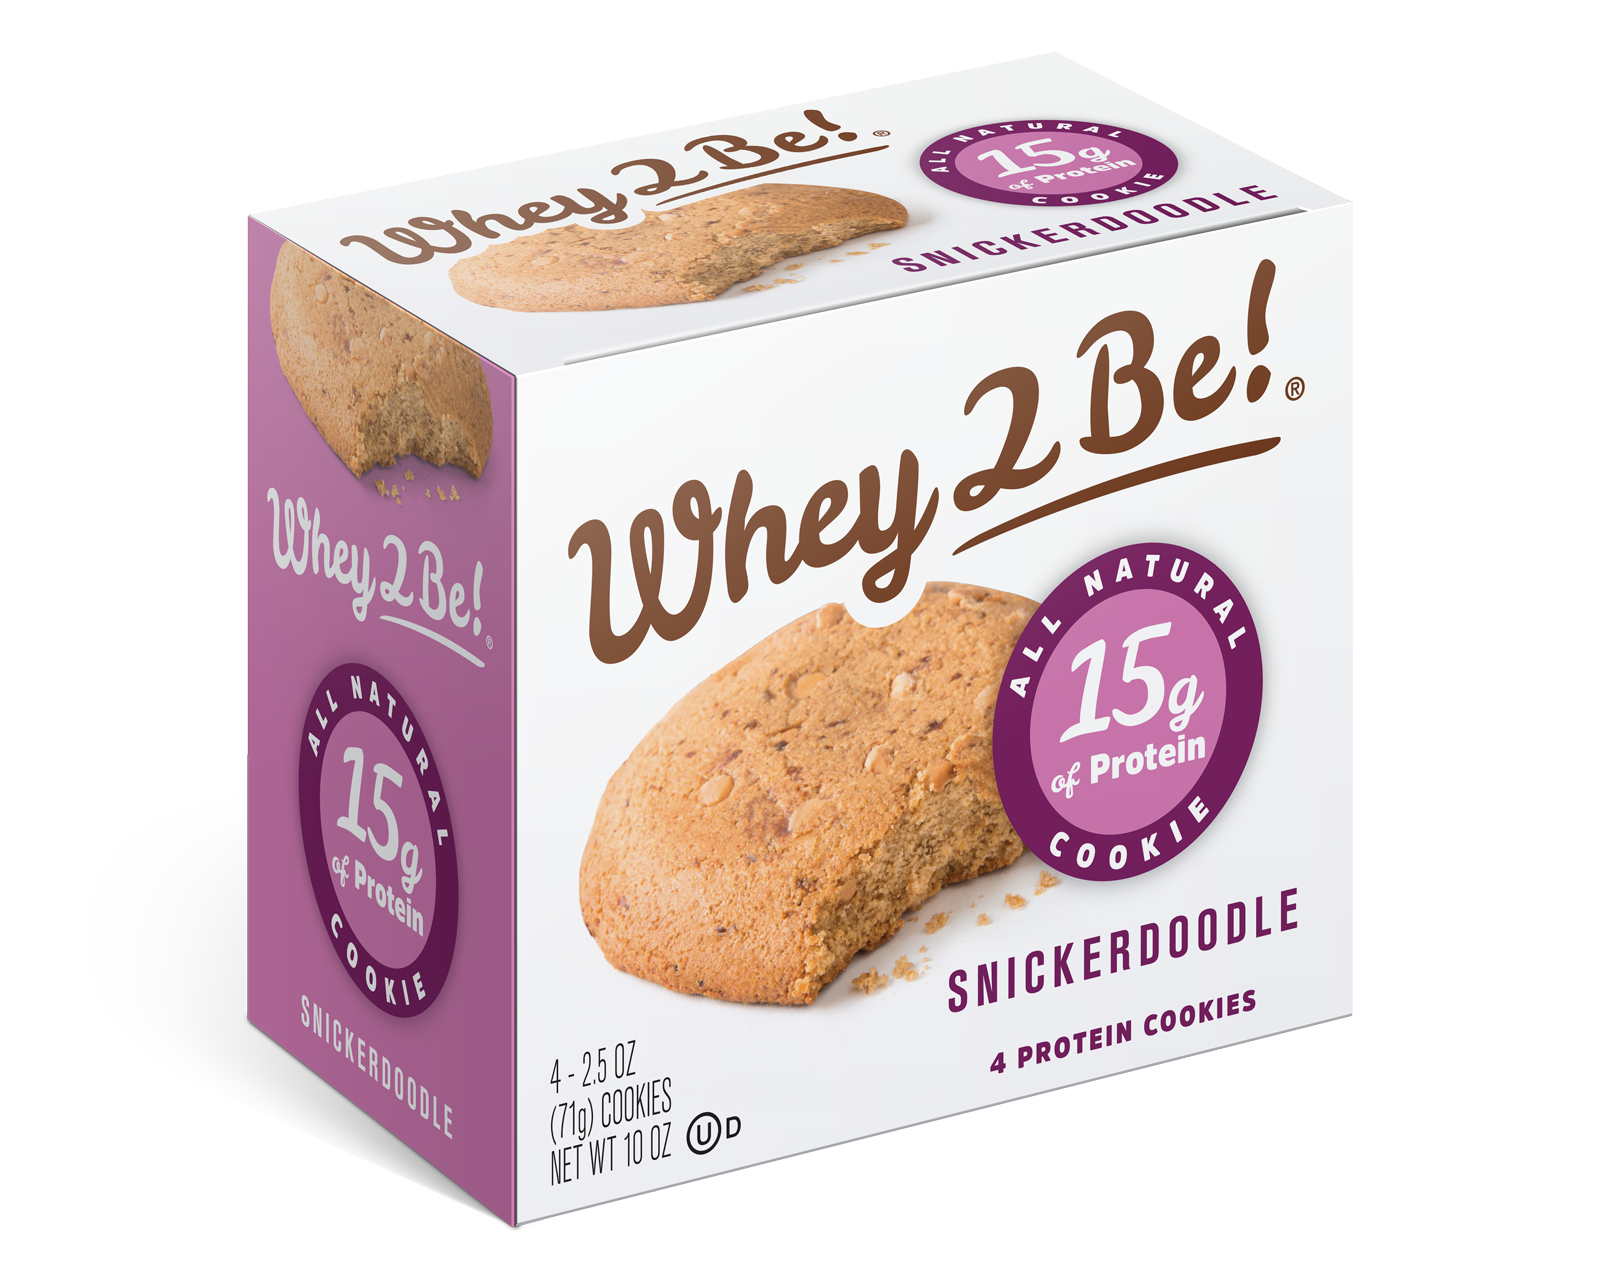 Image of Snickerdoodle 4-Pack